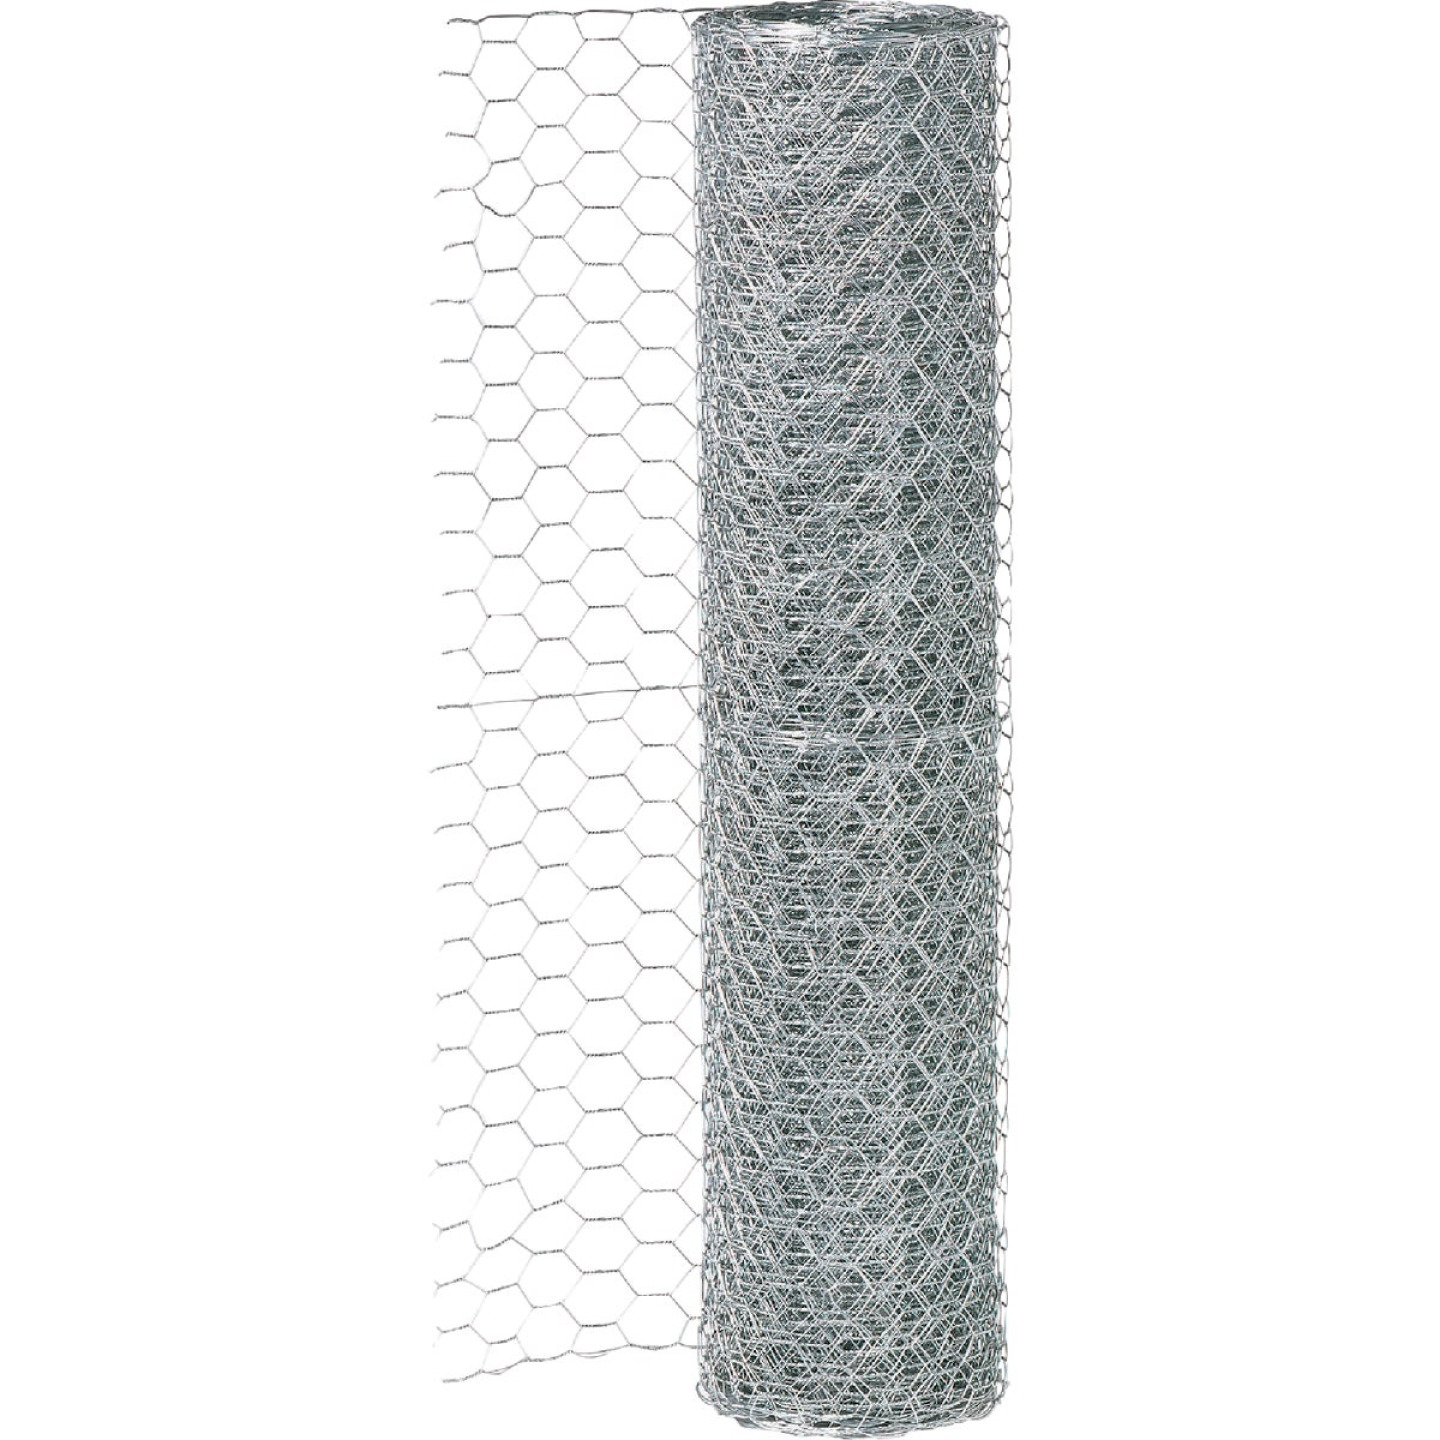 Do it 1 In. x 24 In. H. x 25 Ft. L. Hexagonal Wire Poultry Netting Image 2